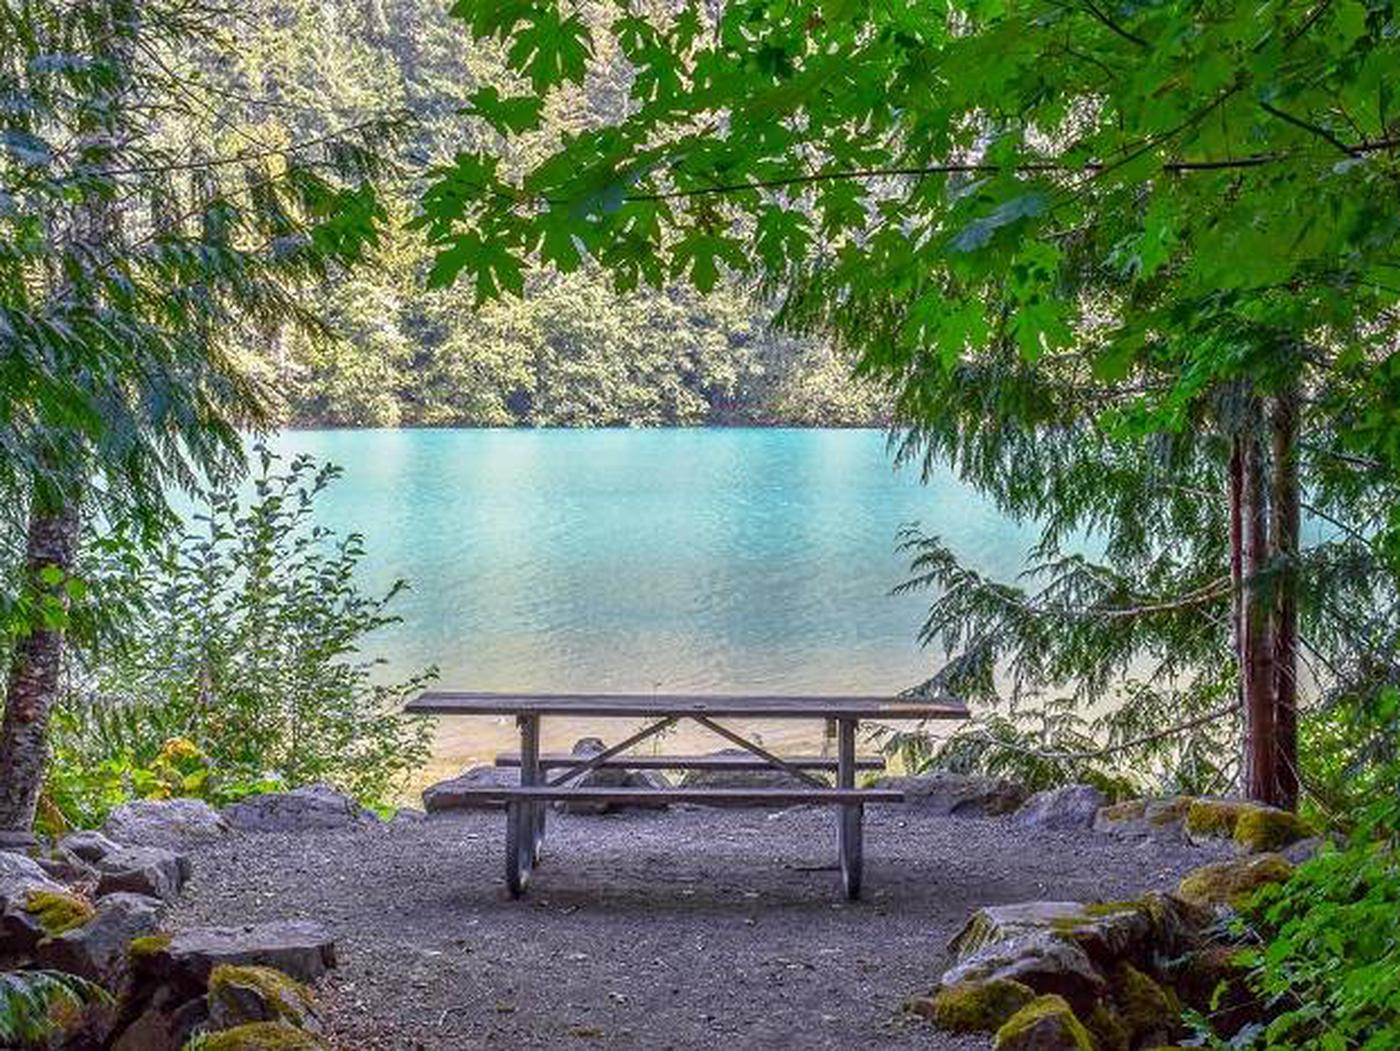 Picnic table with a view of Diablo Lake in a Colonial Creek campsite.View of Diablo Lake from a lakeside campsite at Colonial Creek South Campground.